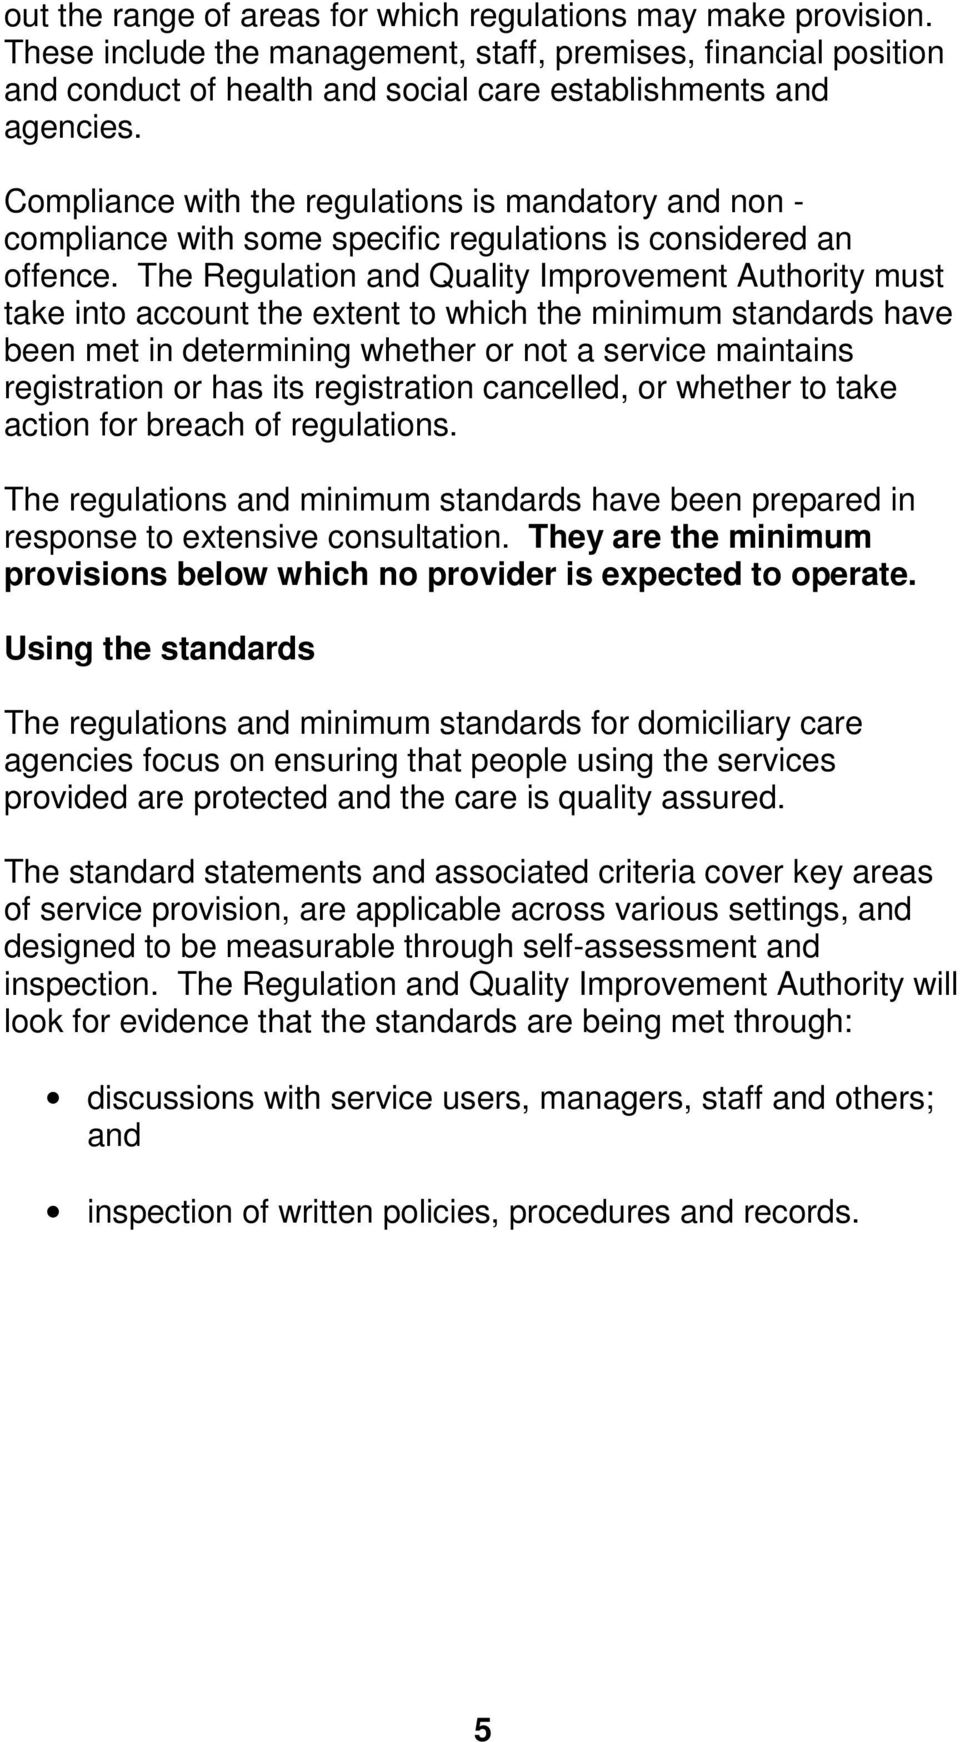 The Regulation and Quality Improvement Authority must take into account the extent to which the minimum standards have been met in determining whether or not a service maintains registration or has